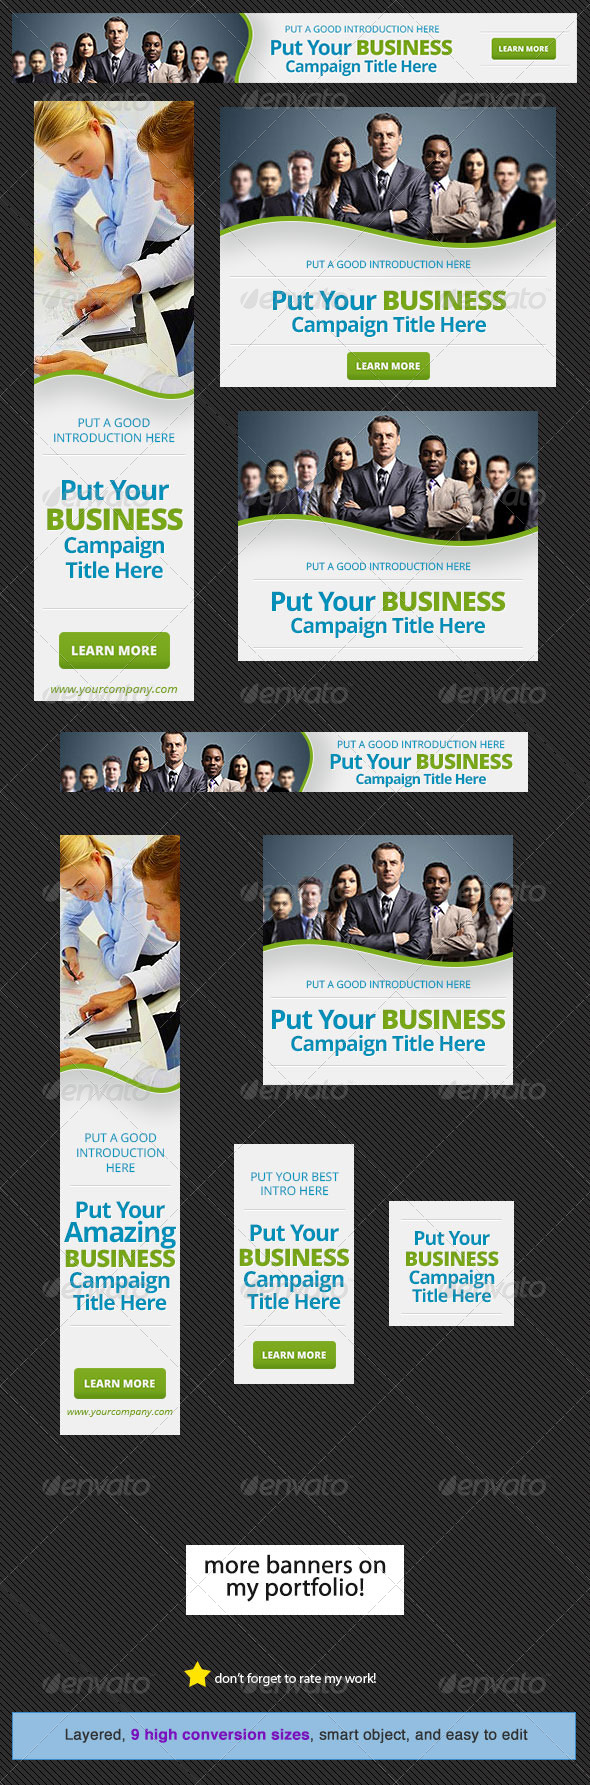 GraphicRiver Corporate Web Banner Design Template 15 4781404